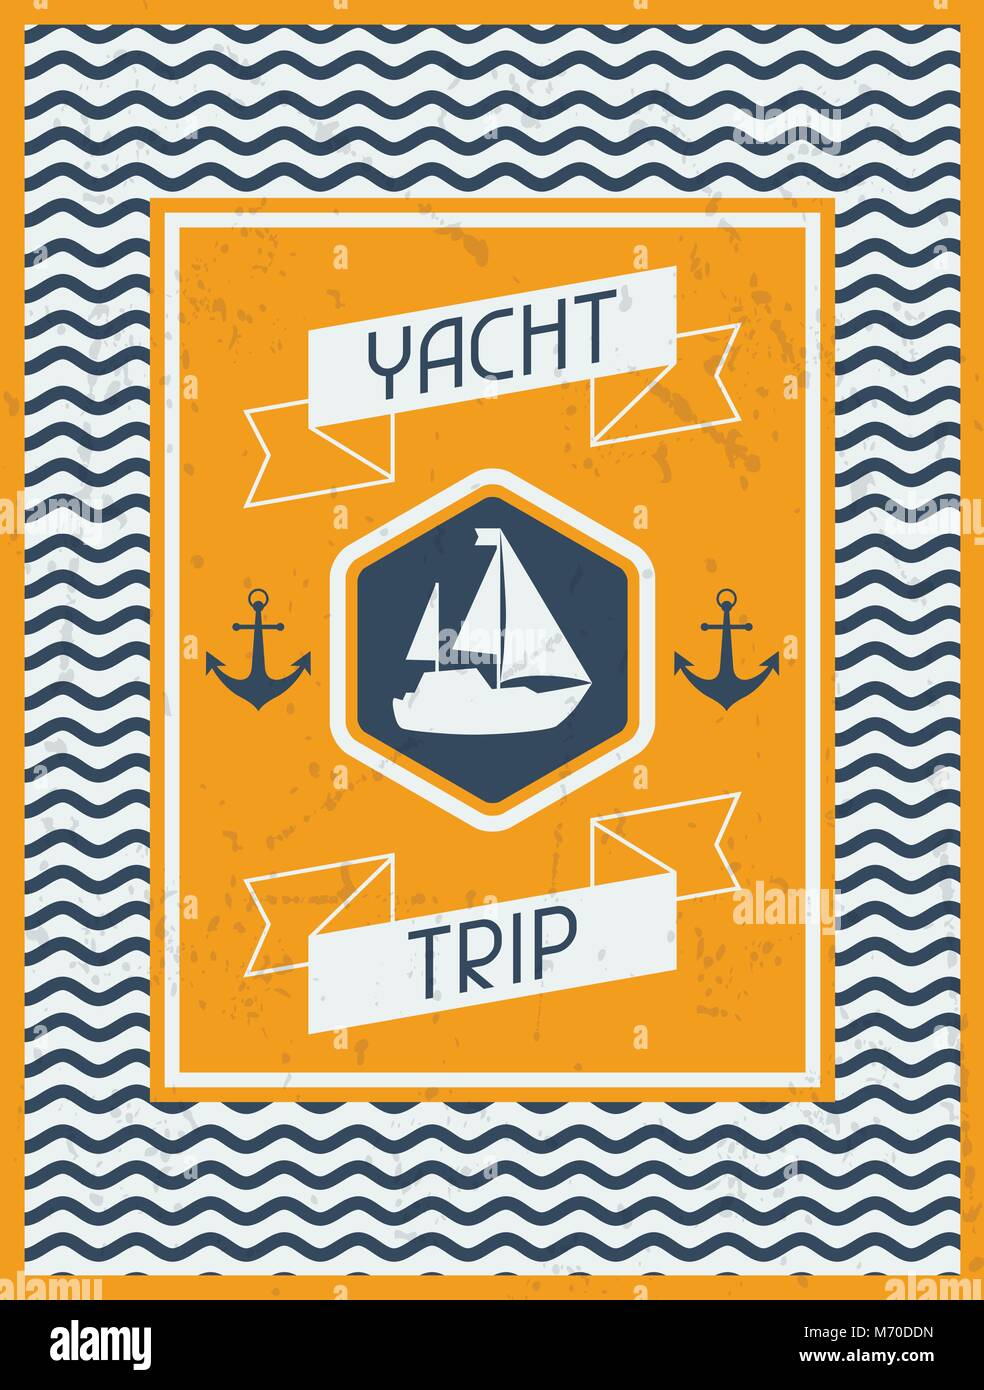 Yacht Trip. Nautical retro poster in flat design style - Stock Image